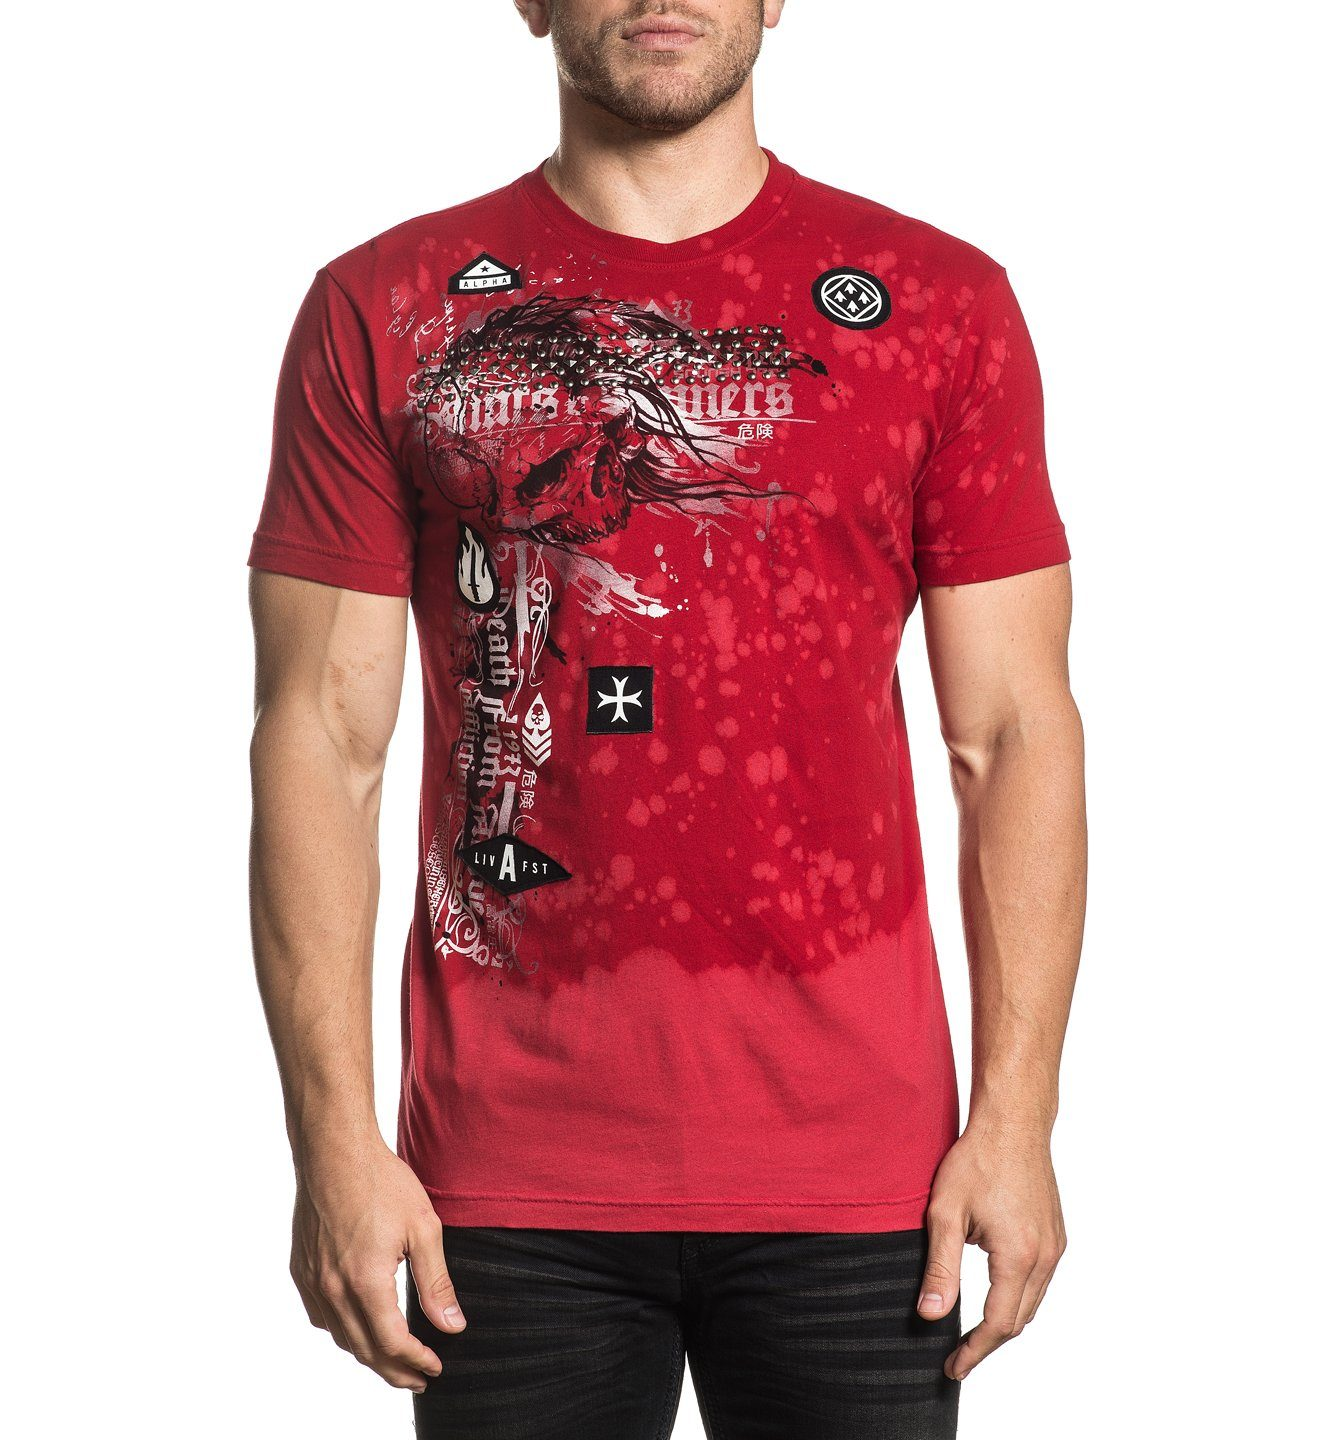 Mens Short Sleeve Tees - Torn Apart